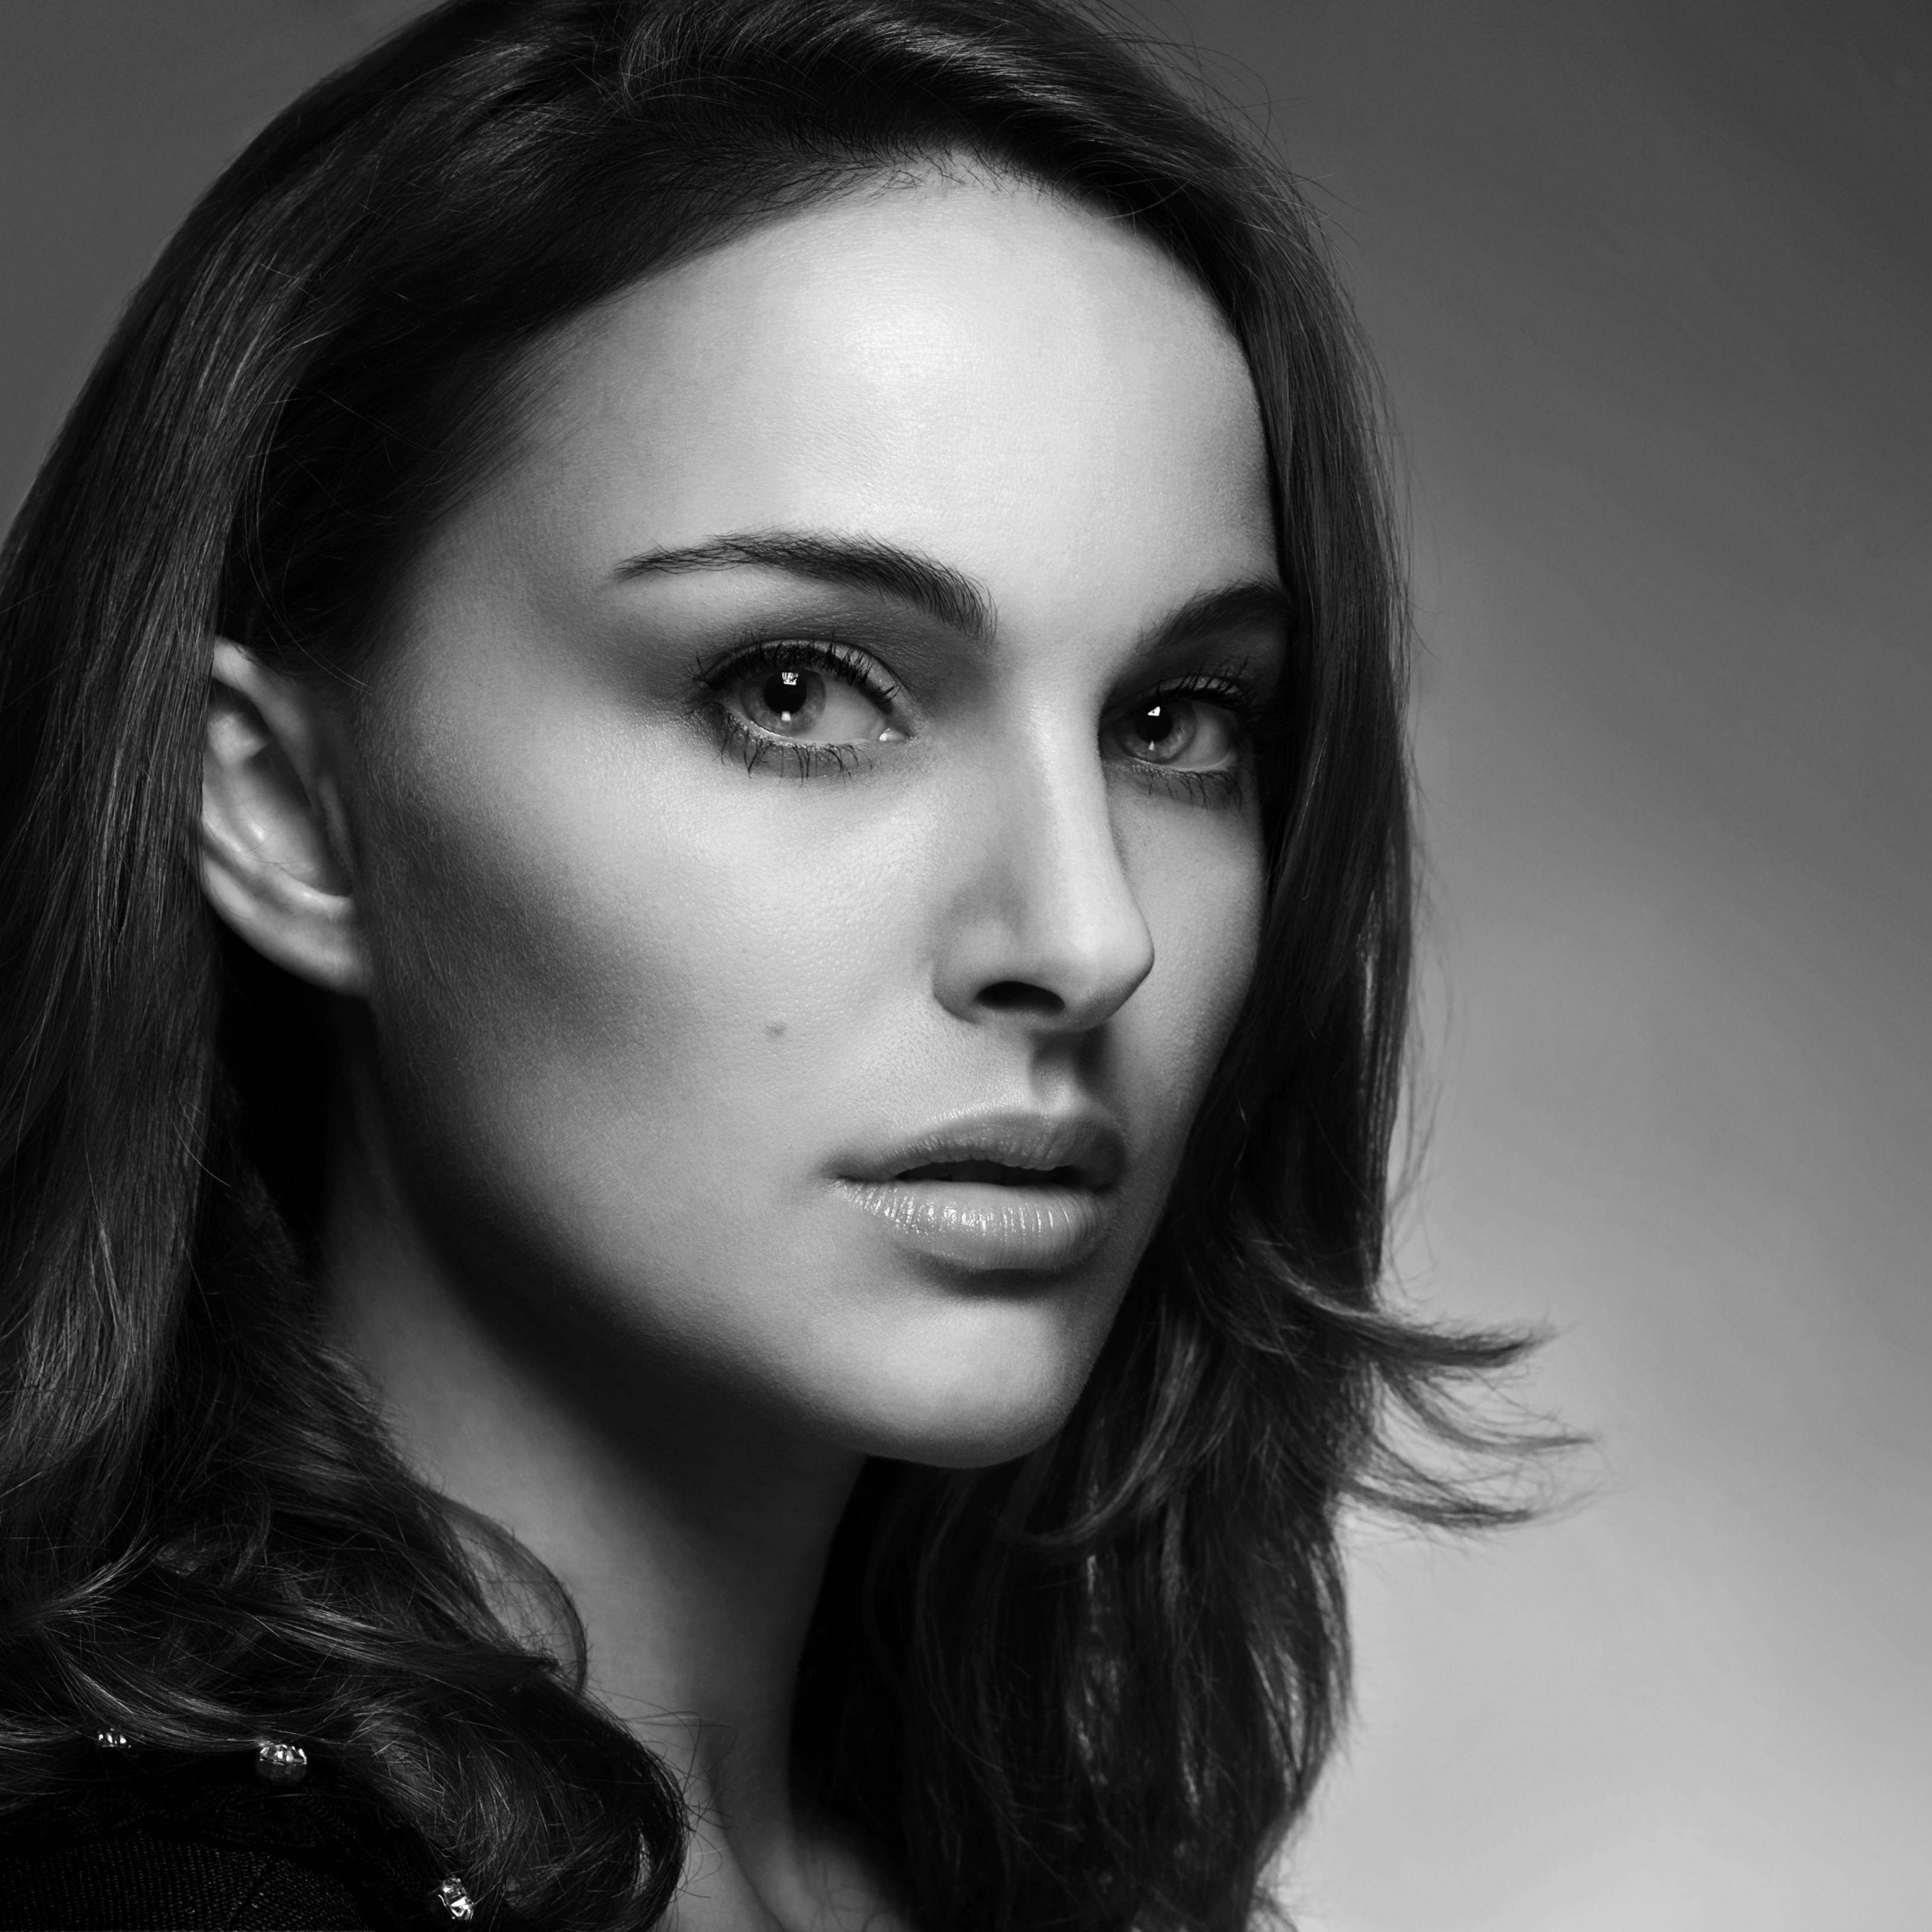 Natalie Portman in Black & White Wallpaper for Apple iPad 3